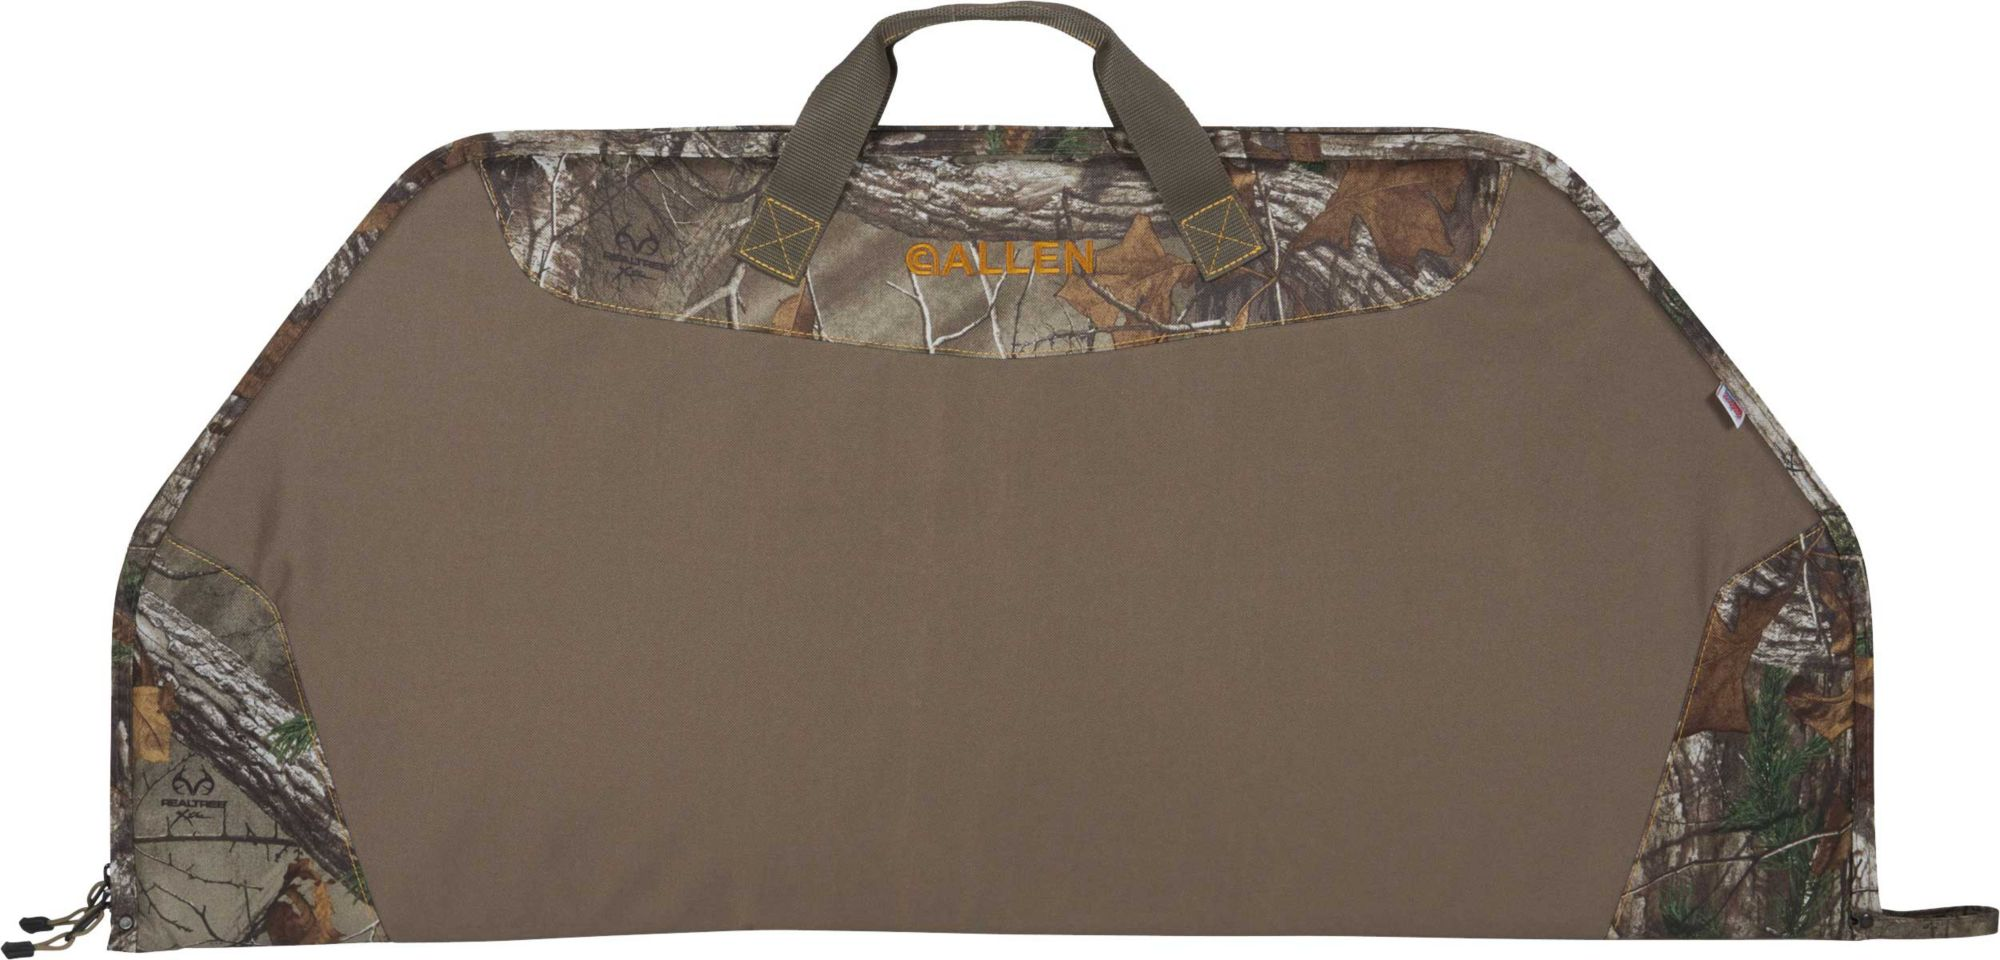 Allen Force Compound Bow Case, Green/Tan thumbnail